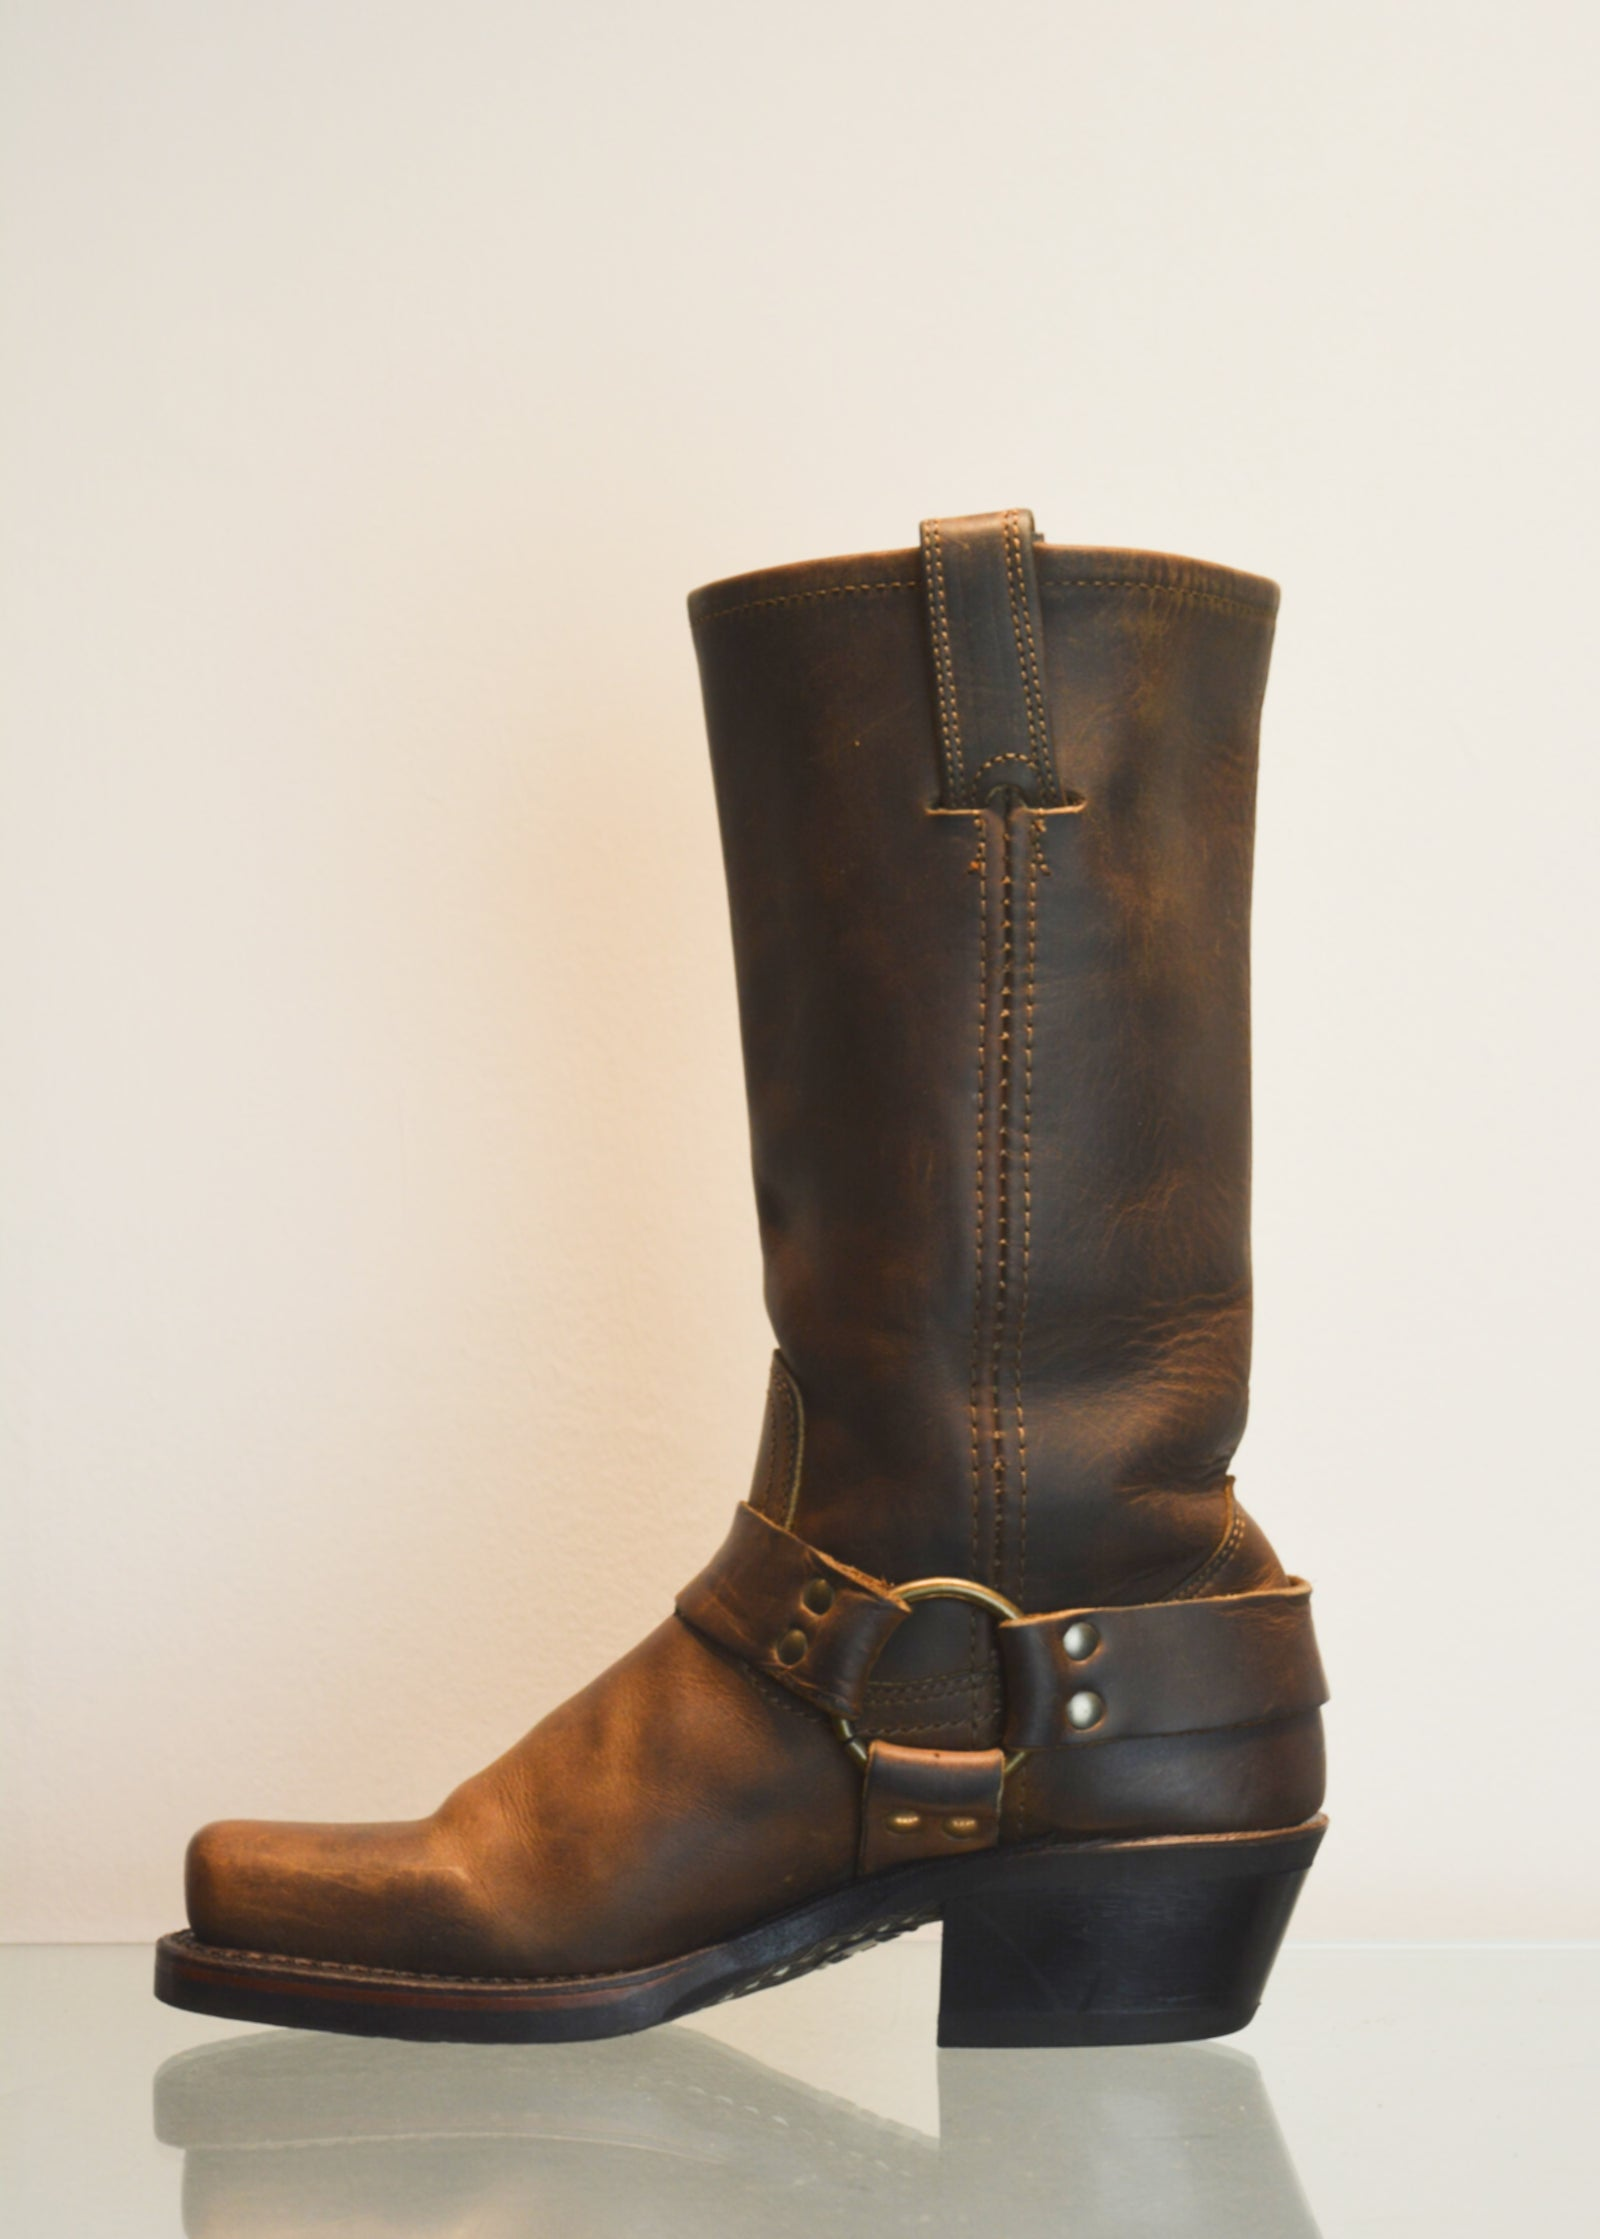 PREWORN | Preloved - 'FRYE' Harness 12R Boot - Size 3.5 UK